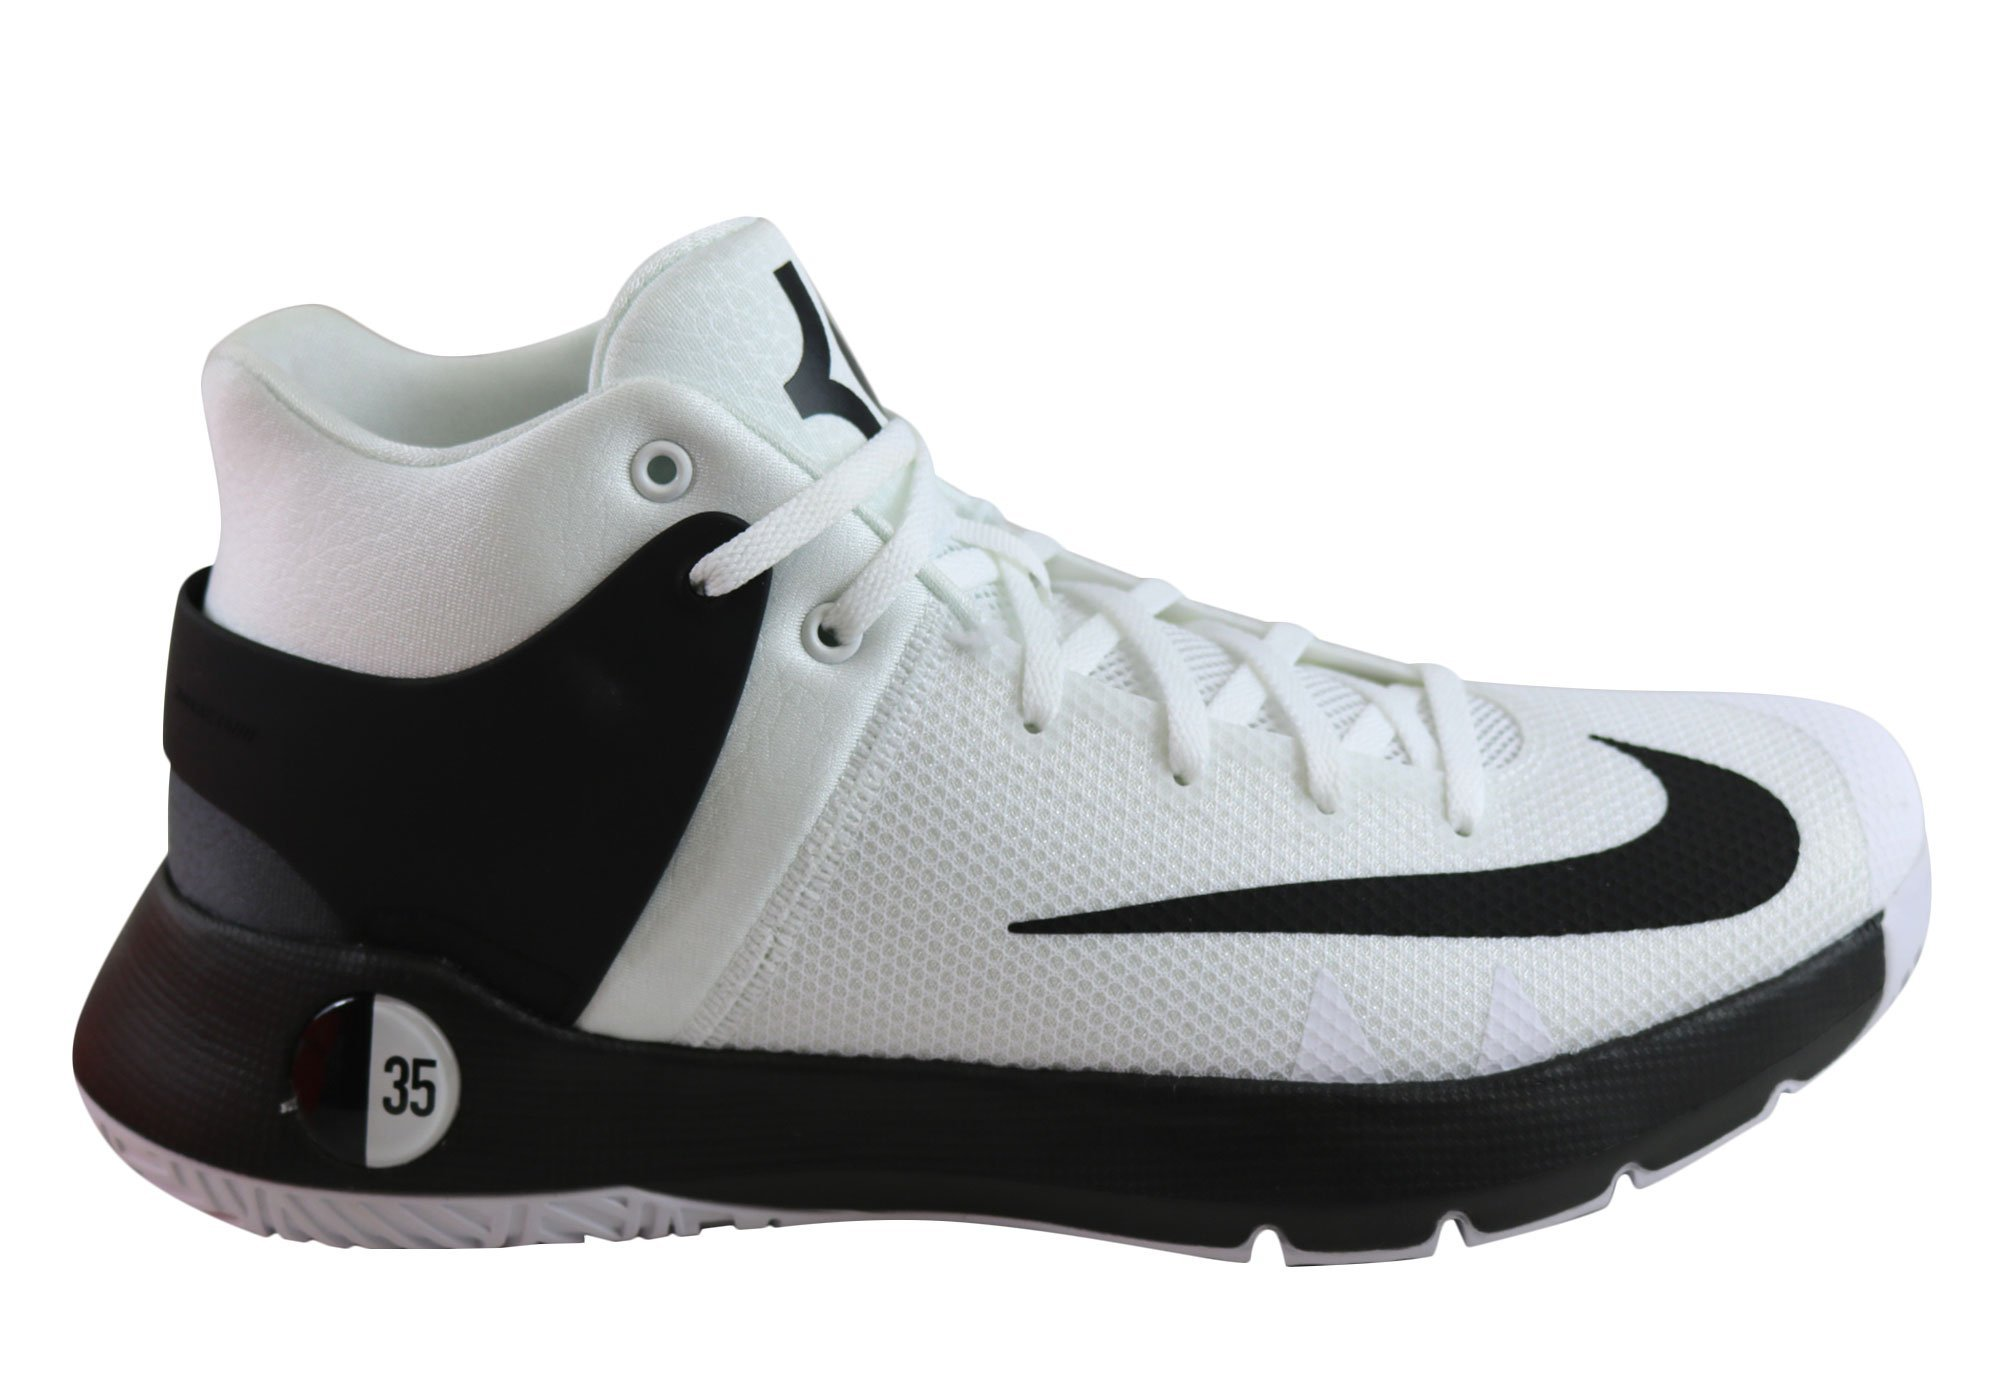 wholesale dealer 2422b 2fa06 Galleon - Nike Mens KD Trey 5 IV Basketball Shoe WhiteBlack